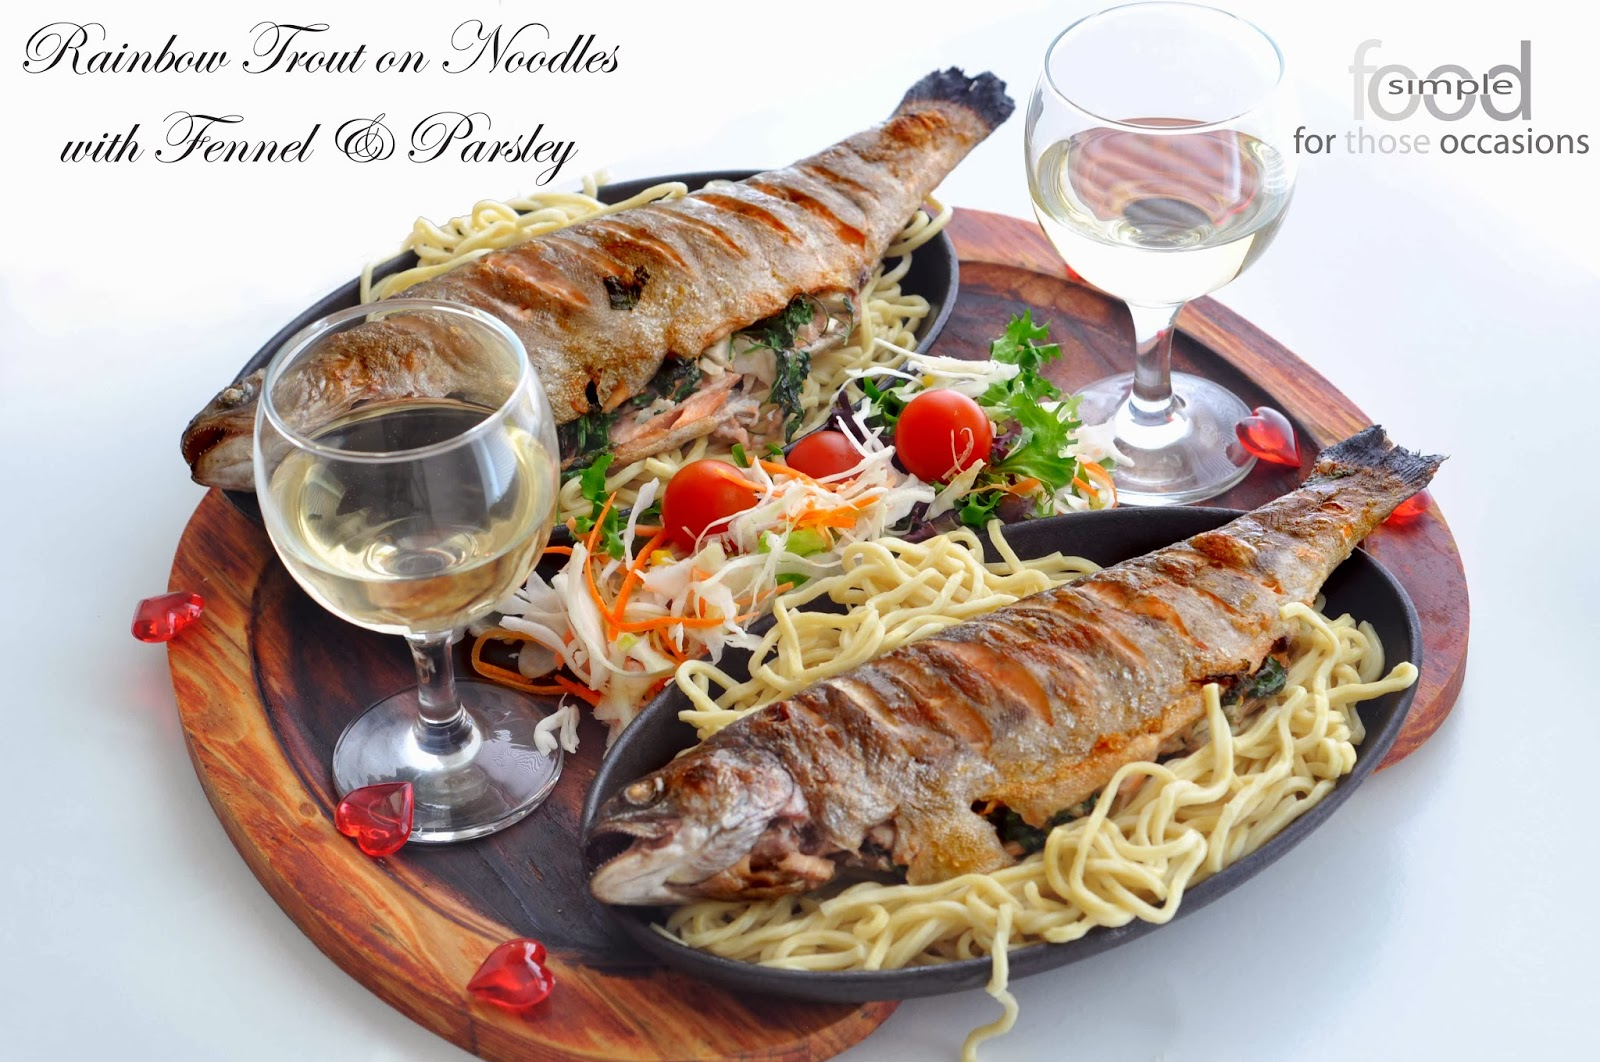 Rainbow Trout on Noodles ~ Simple Food